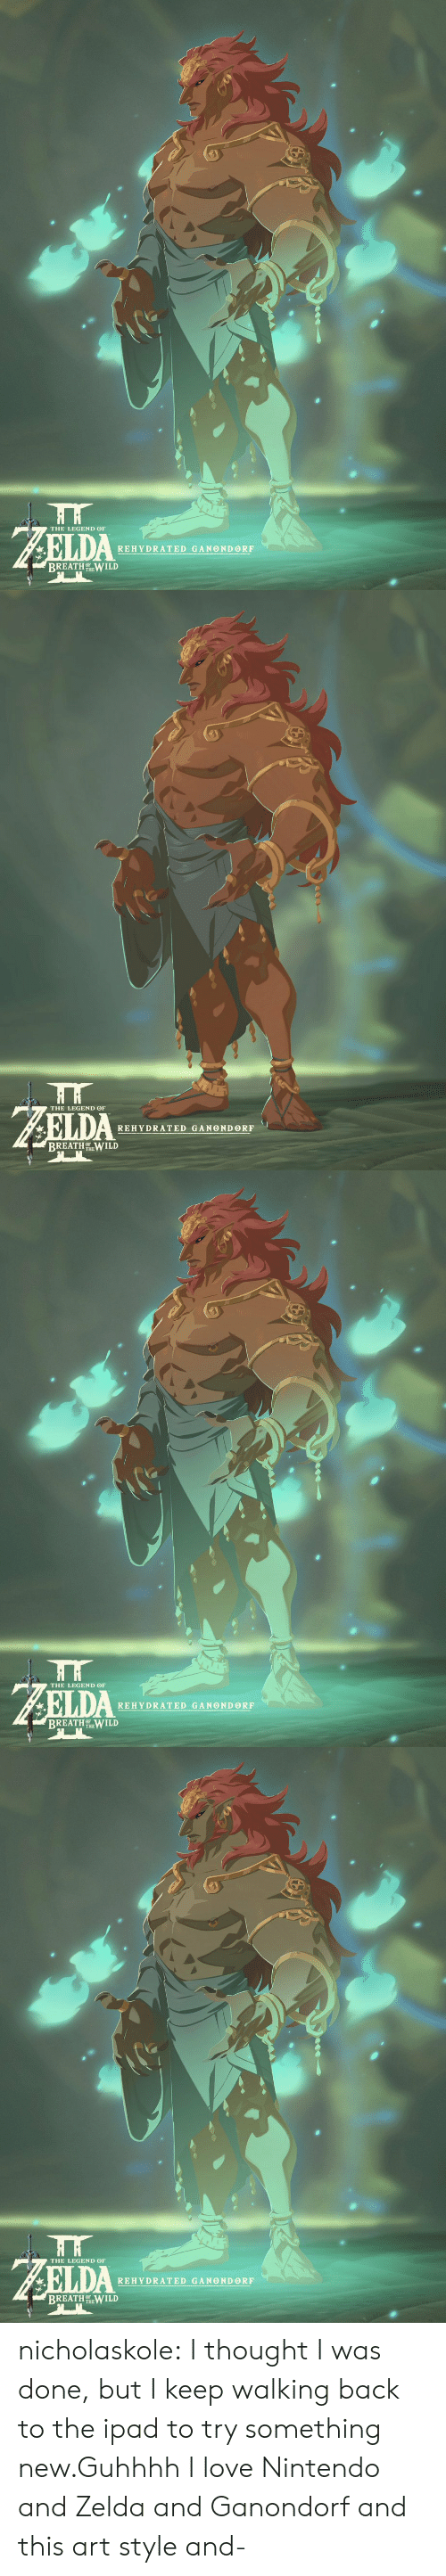 Ipad, Love, and Nintendo: THE LEGEND OF  REHYDRATED GANONDORF  BREATHOWILD   HH  THE LEGEND OF  REHYDRATED GANOND ORF  BREATH TEILD   THE LEGEND OF  REHYDRATED GANONDORF  BREATH OT WILD   THE LEGEND OF  REHYDRATED GANOND ORF  BREATH ILD nicholaskole:  I thought I was done, but I keep walking back to the ipad to try something new.Guhhhh I love Nintendo and Zelda and Ganondorf and this art style and-